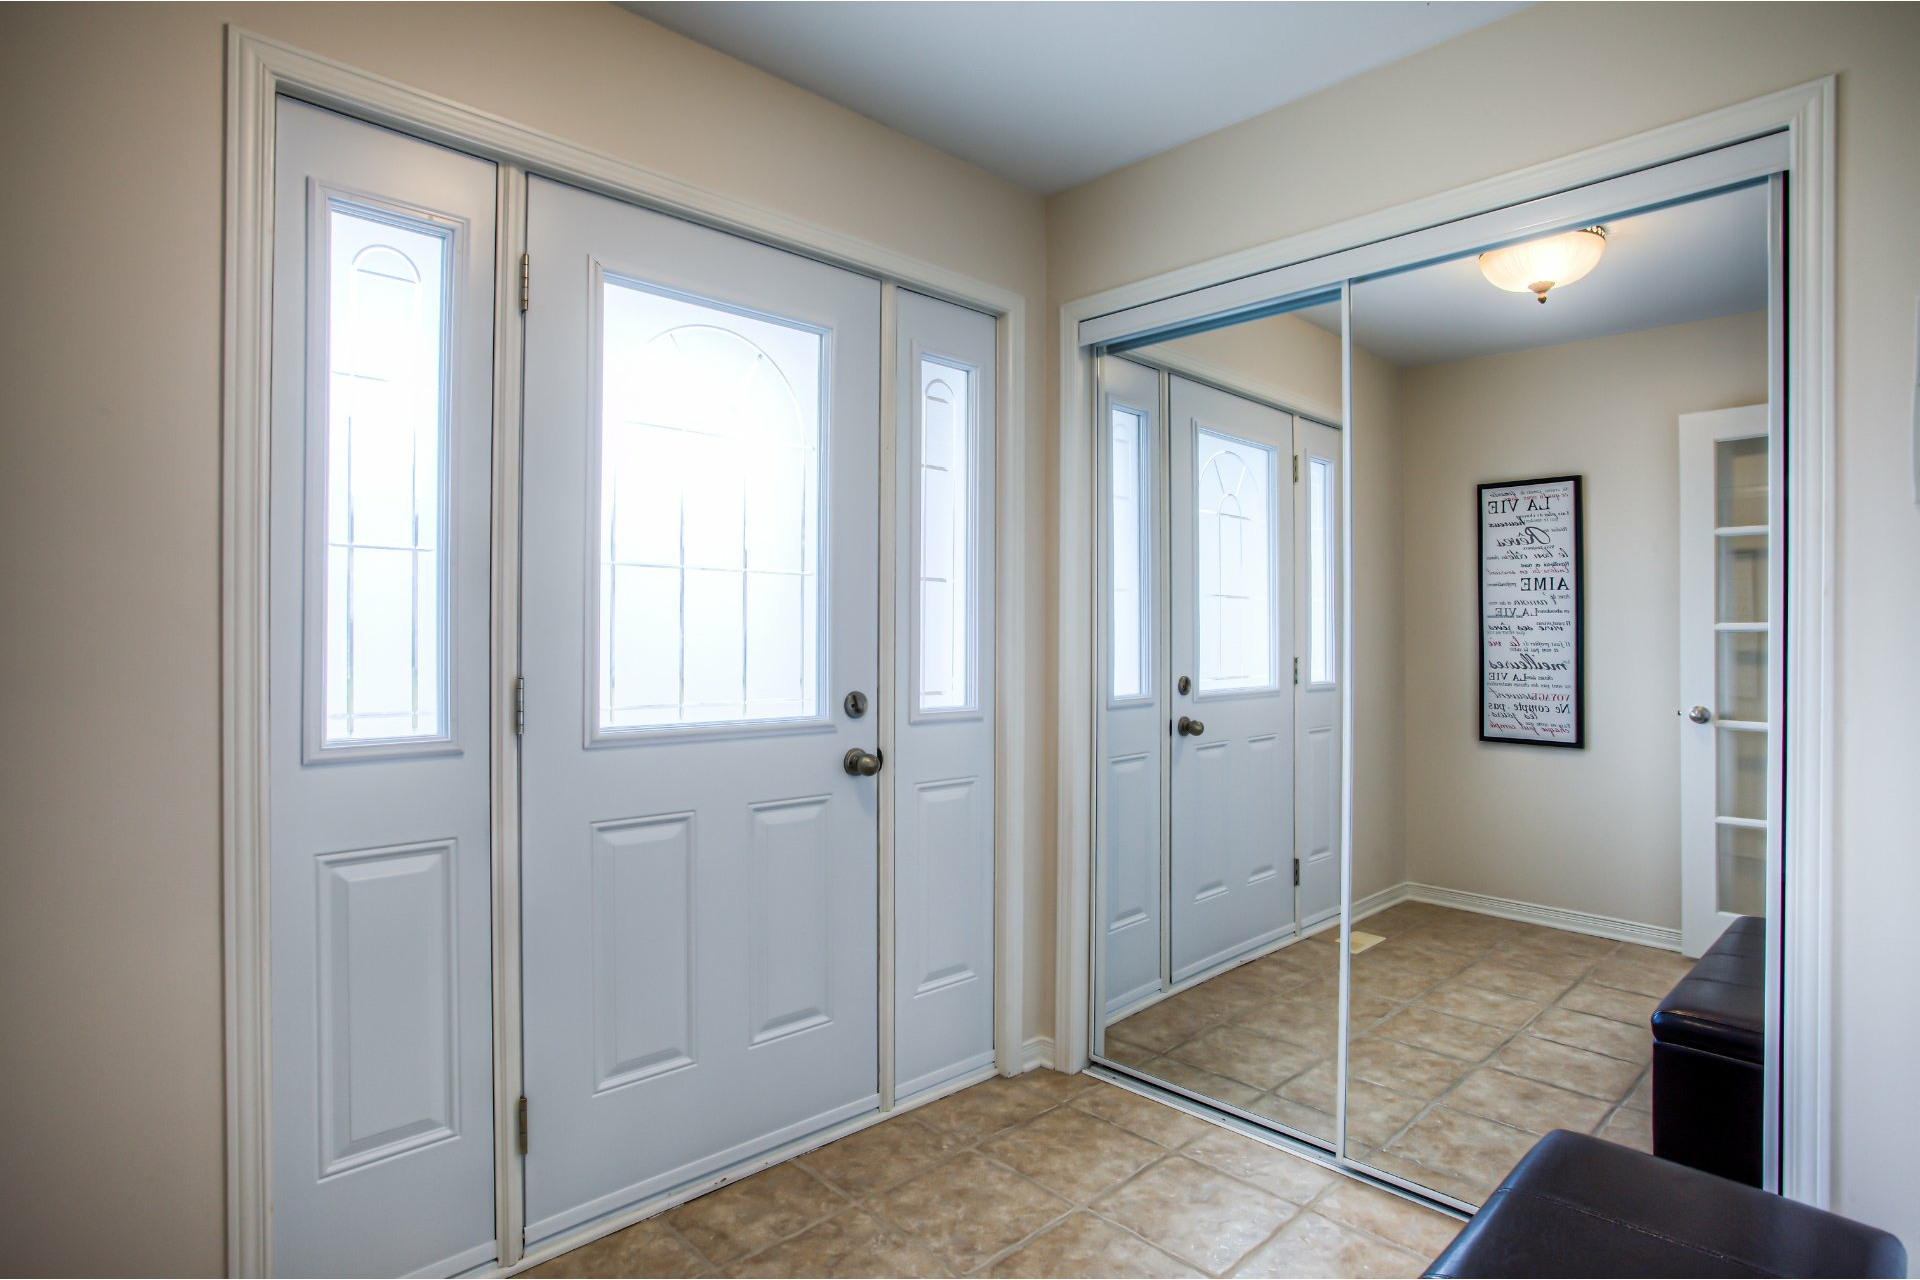 image 2 - House For sale Vaudreuil-Dorion - 9 rooms